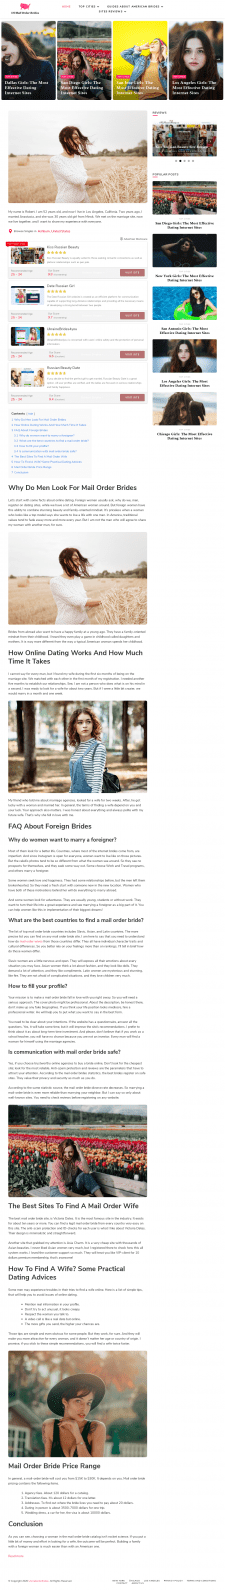 Why Do Men Look For Mail Order Brides